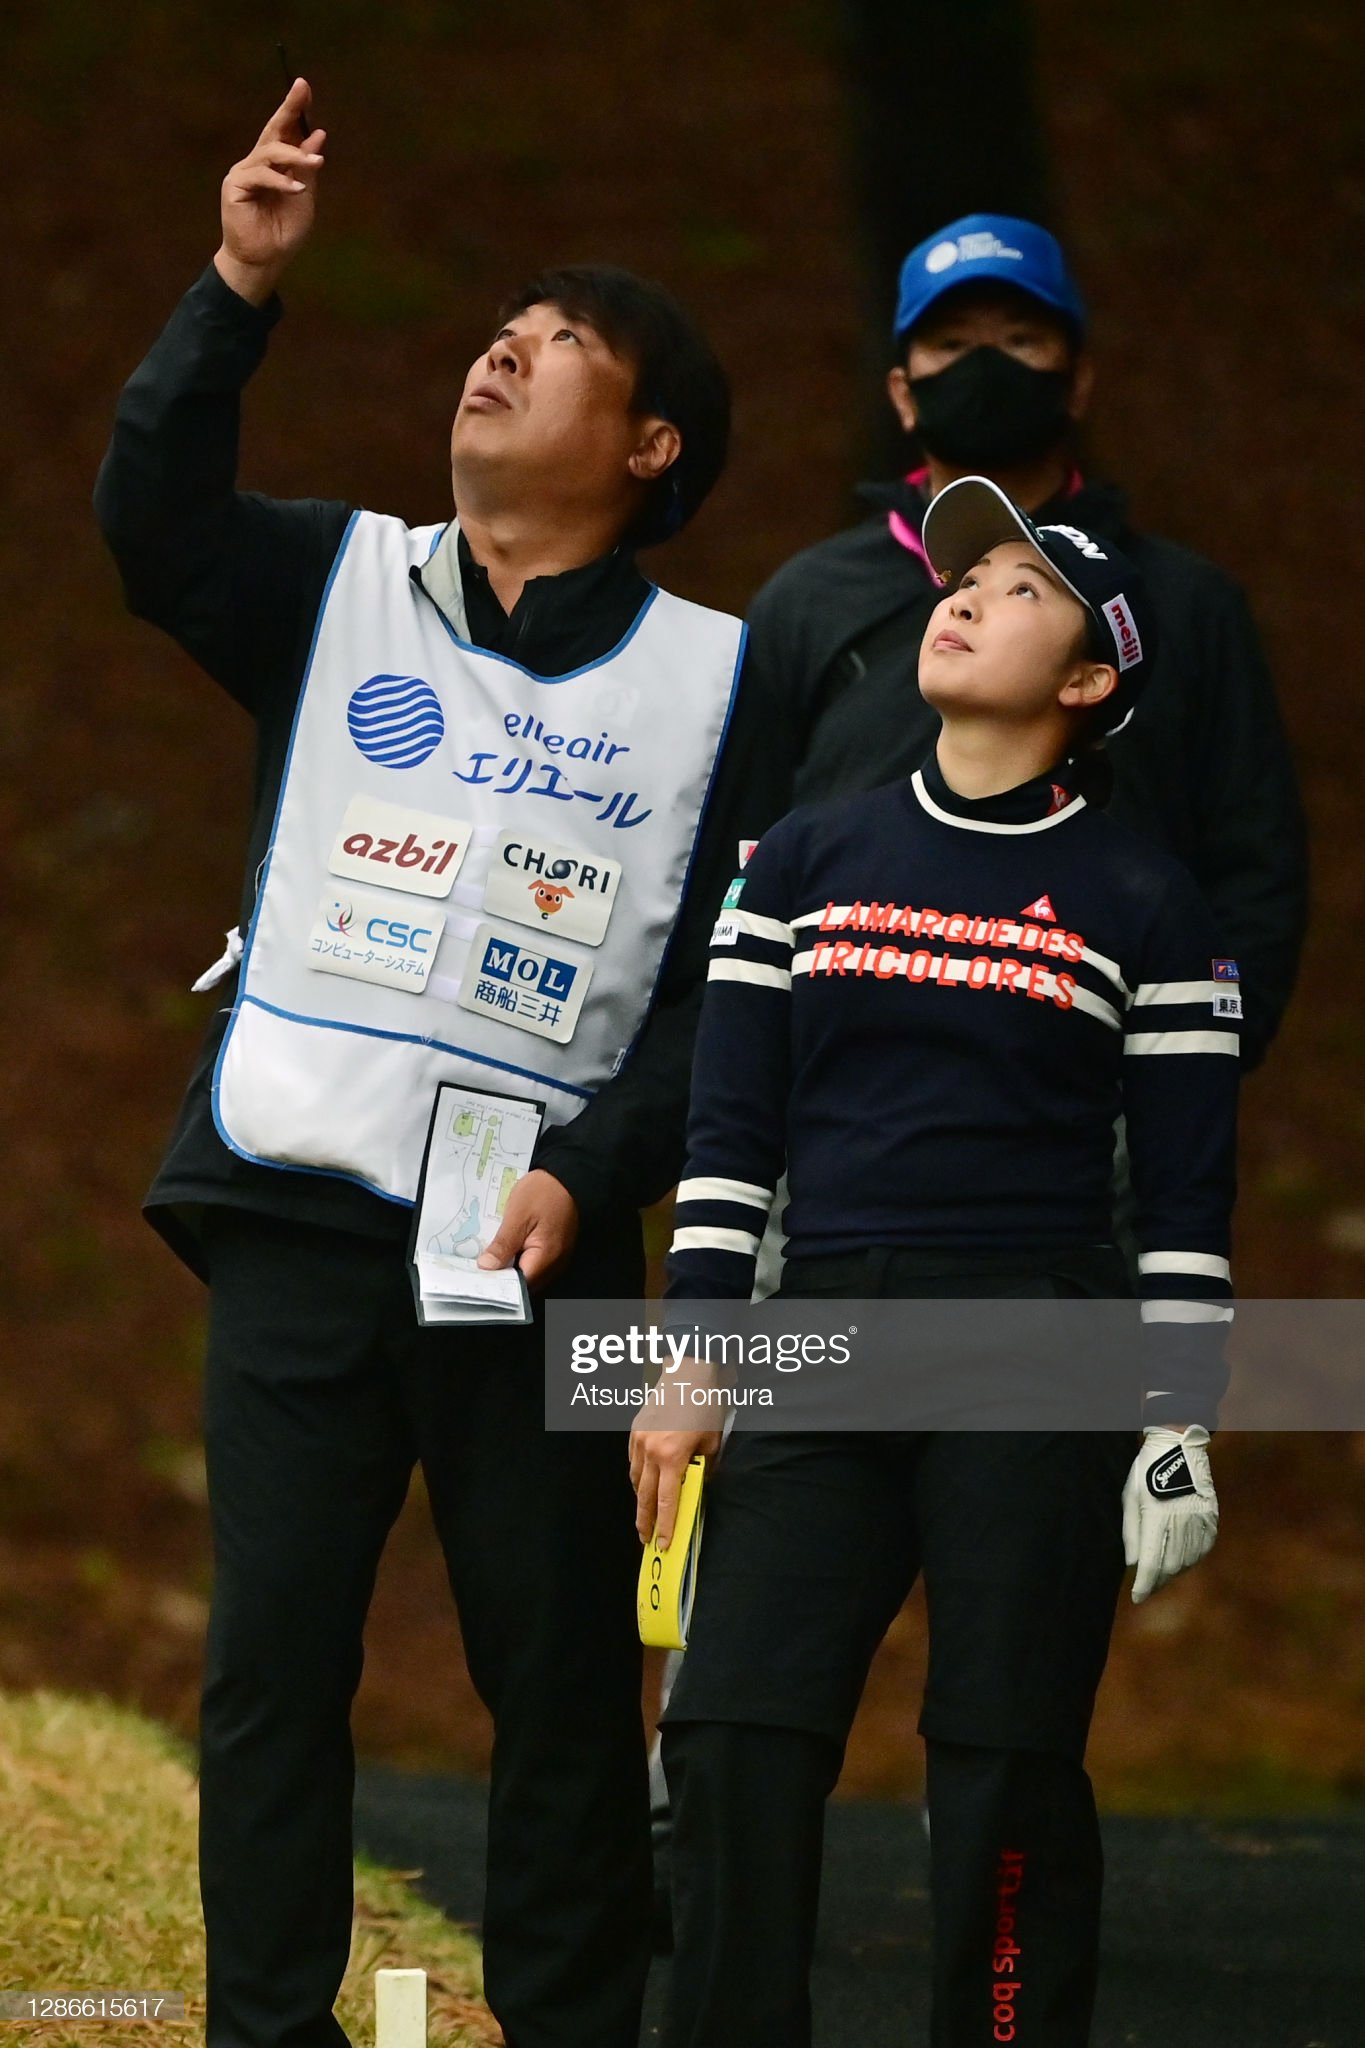 https://media.gettyimages.com/photos/sakura-koiwai-of-japan-talks-with-her-caddie-on-the-3rd-tee-during-picture-id1286615617?s=2048x2048